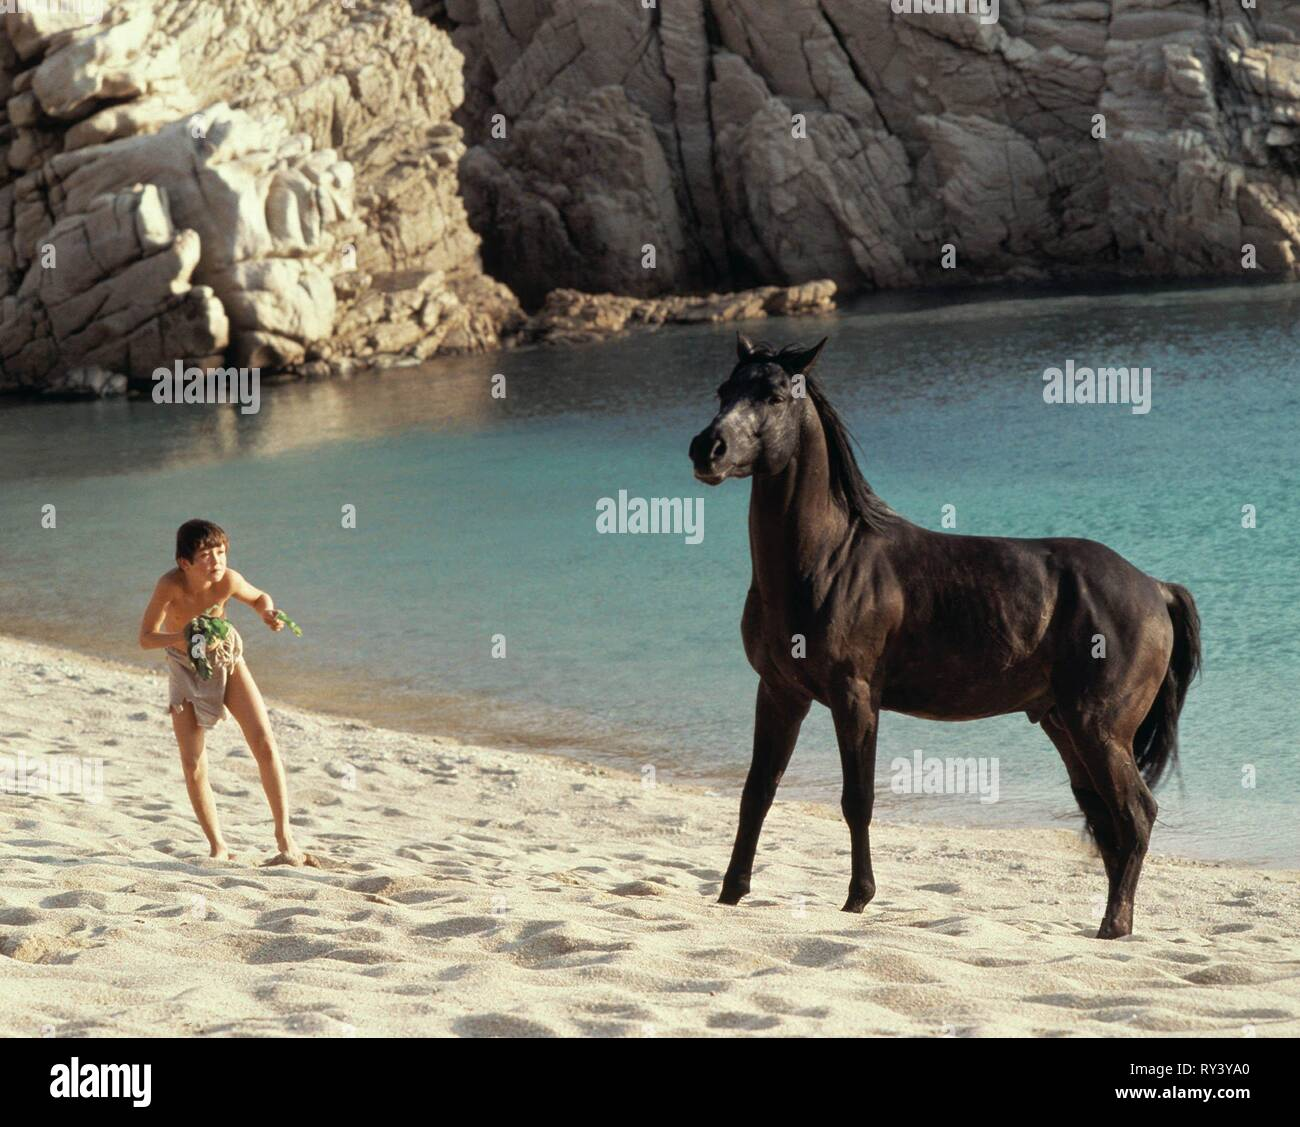 KELLY RENO, THE BLACK STALLION, 1979 - Stock Image